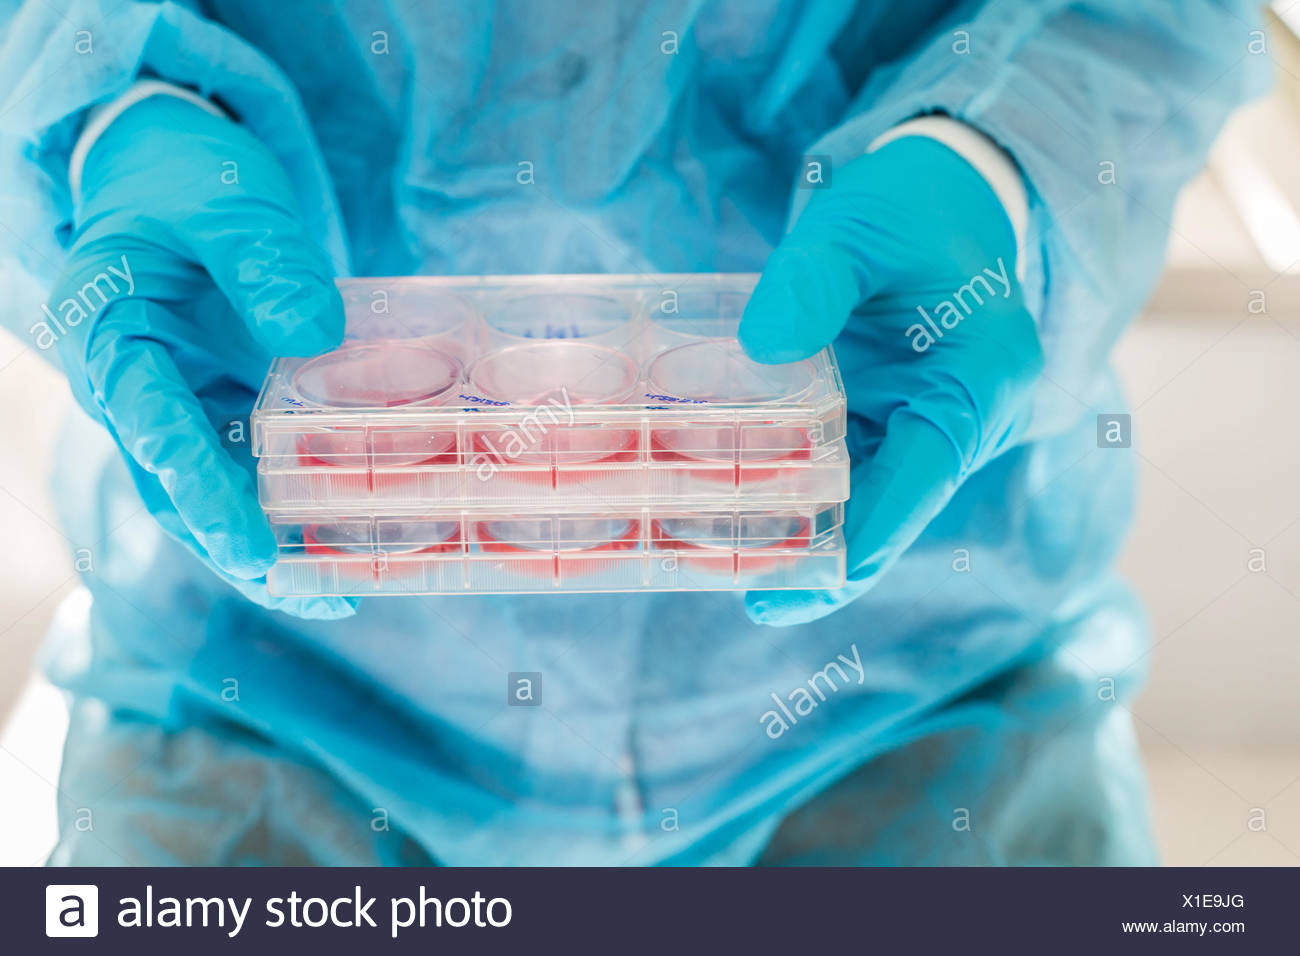 Cultures of cells in liquid medium, Biology and Research Center. - Stock Image